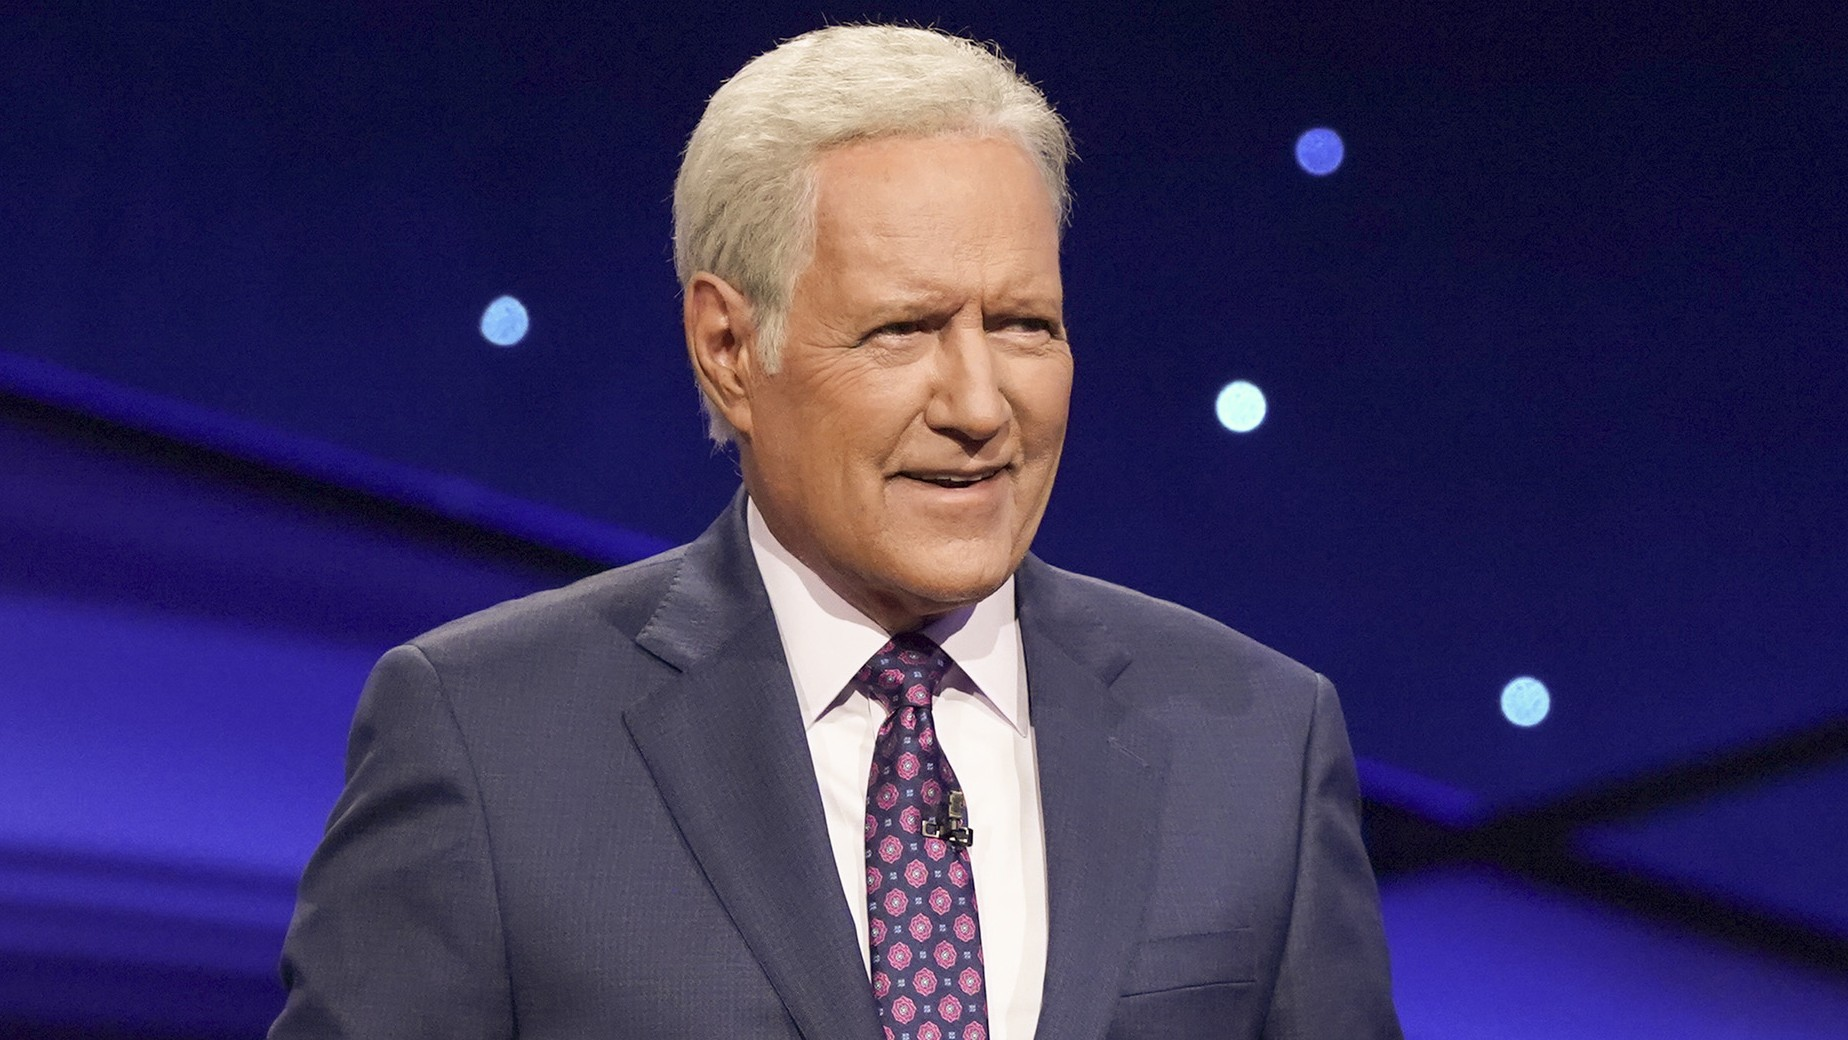 'Jeopardy!' close to naming Alex Trebek's permanent replacement after months of guest hosts